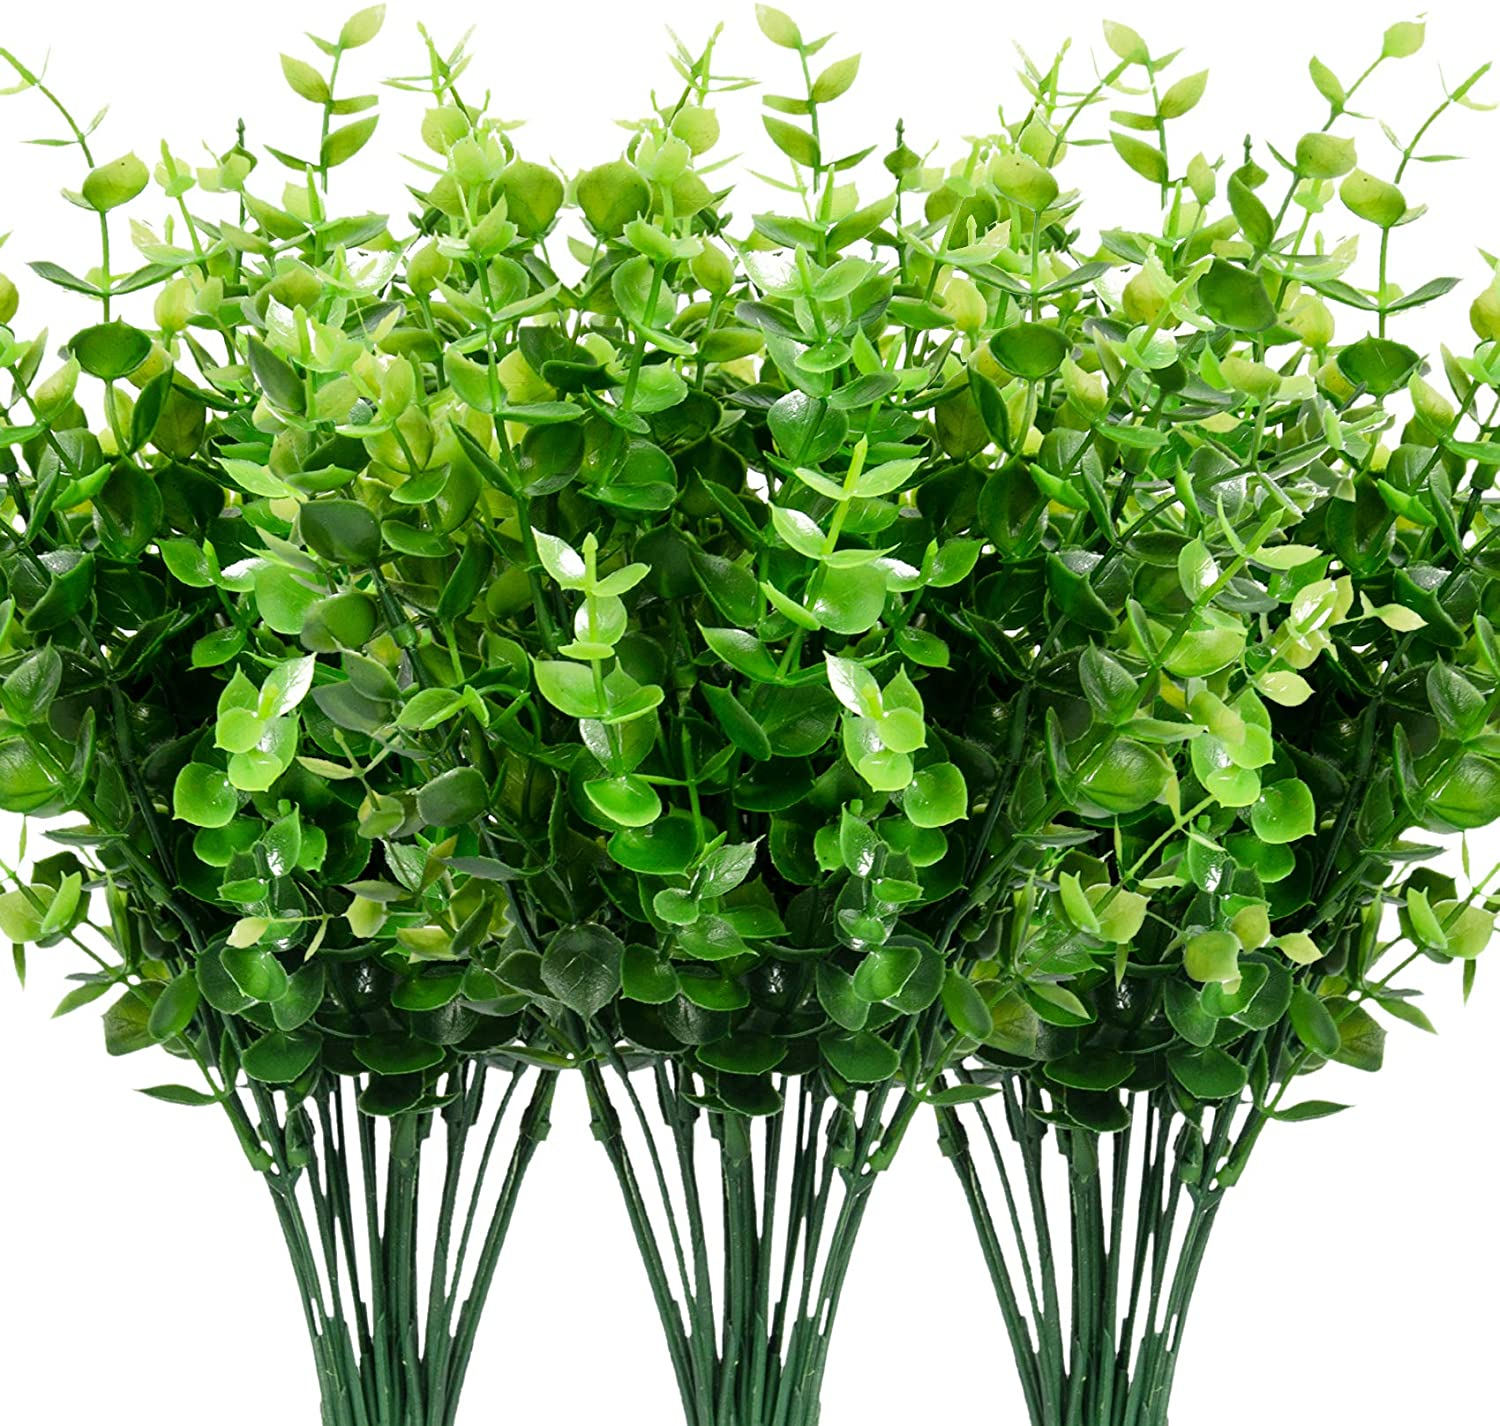 9 Bundles Fake Plants Artificial Boxwood Greenery 63 Stems Fade Resistant Faux Plastic Plants for Garden Farmhouse Porch Patio Window Box Wedding Office Home Indoor Outdoor Decor